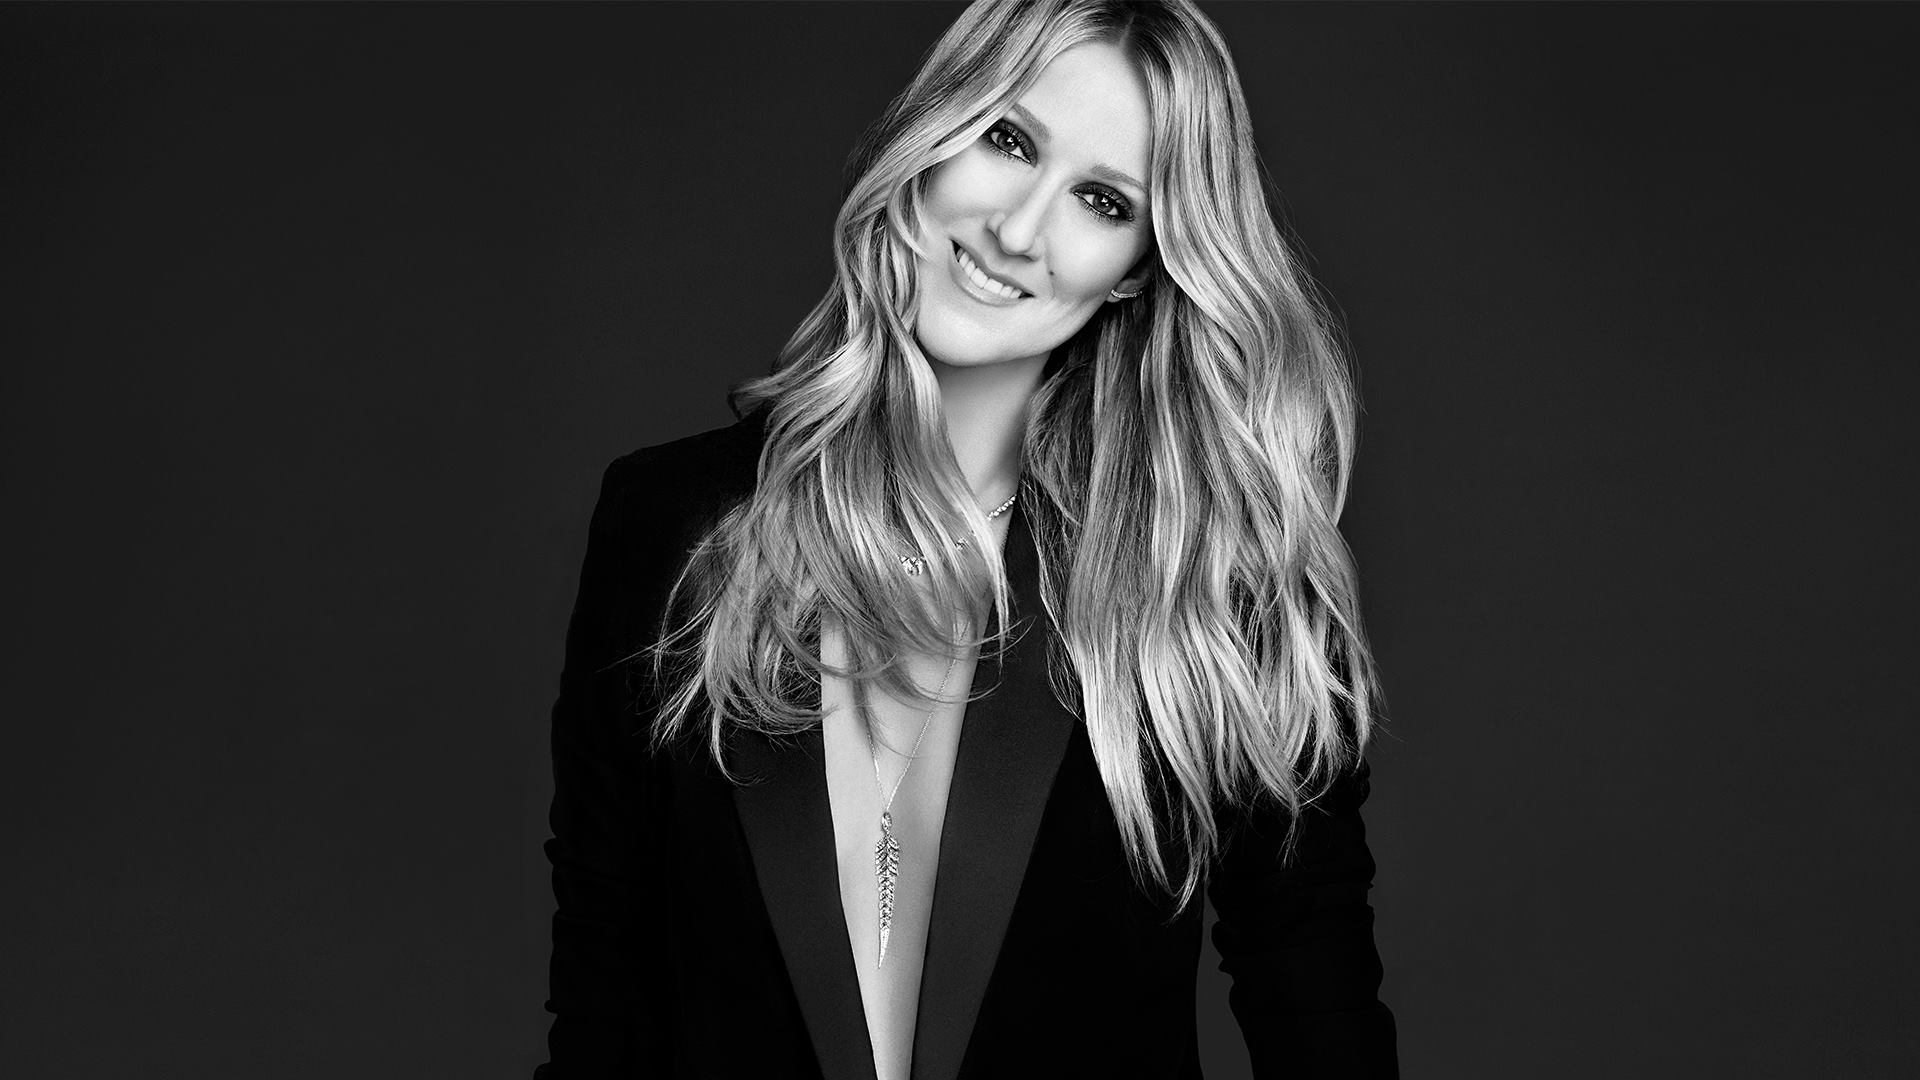 Photo of Vida de Céline Dion será adaptada para o cinema